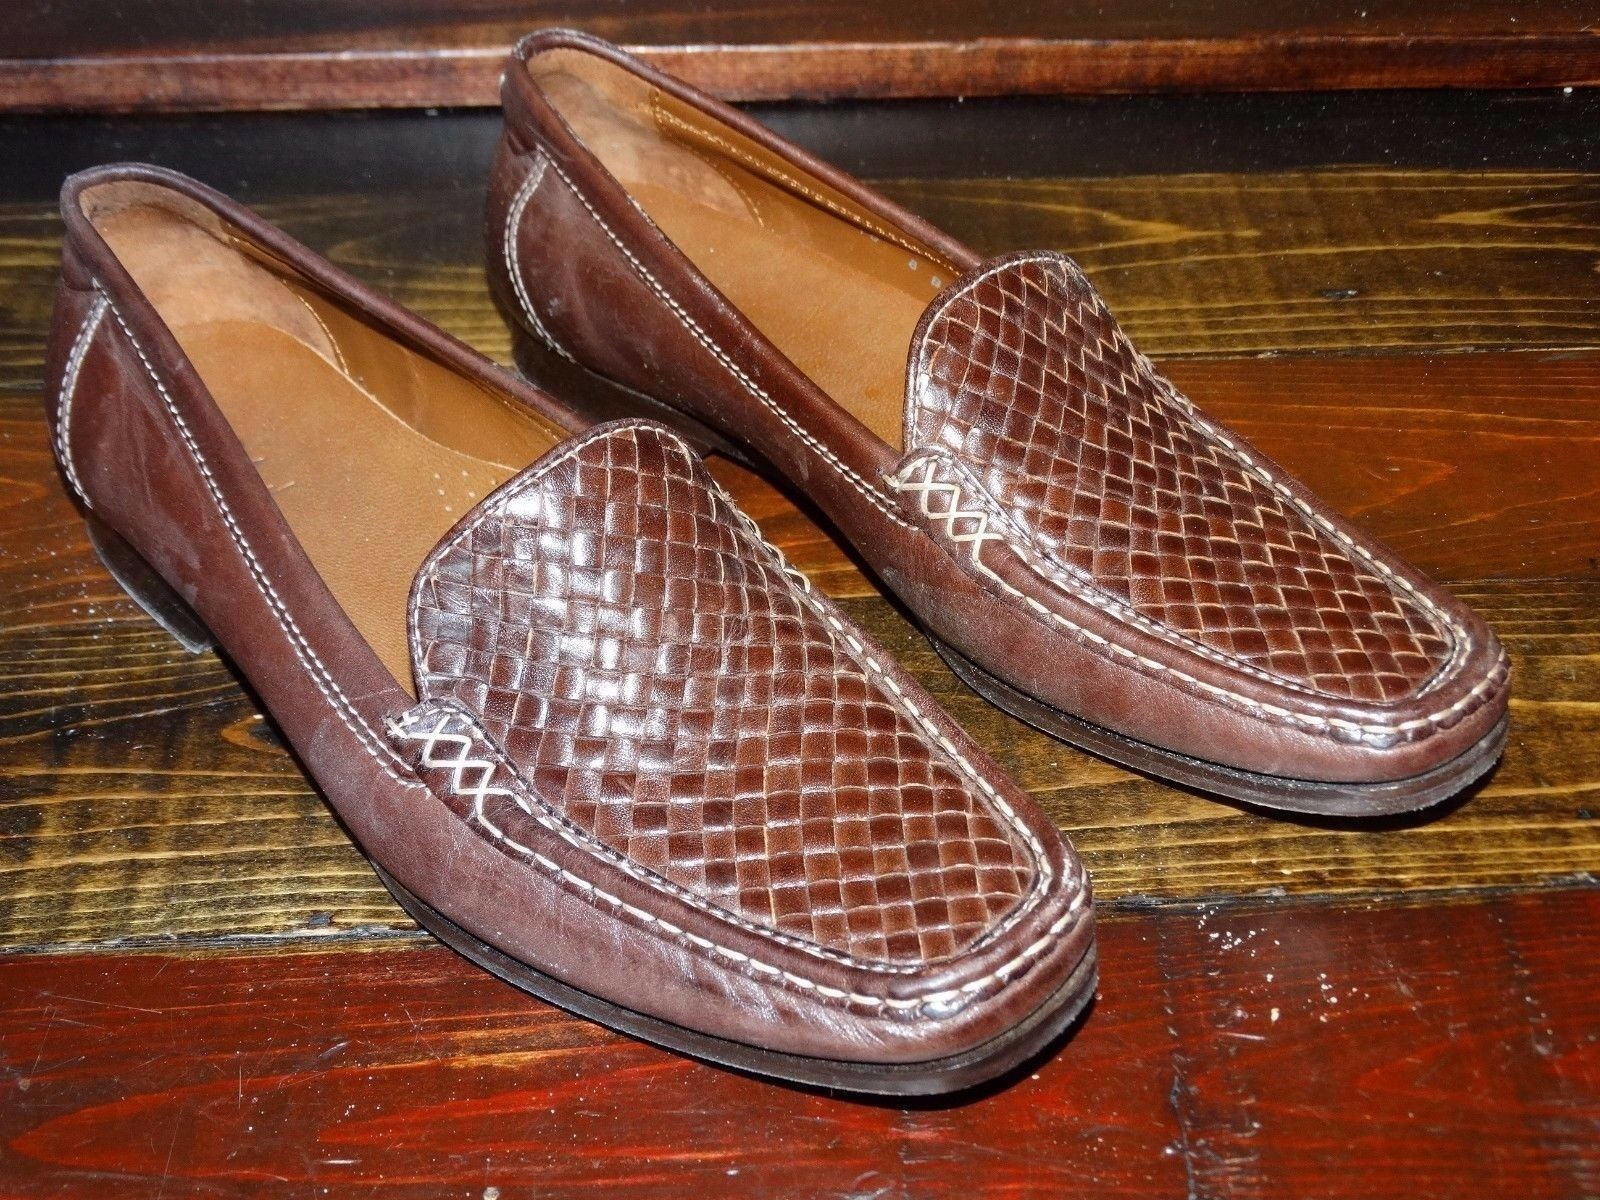 18839  Womens  Cole Haan Brown Leather Flats shoes  Basketweave  Size 8 B